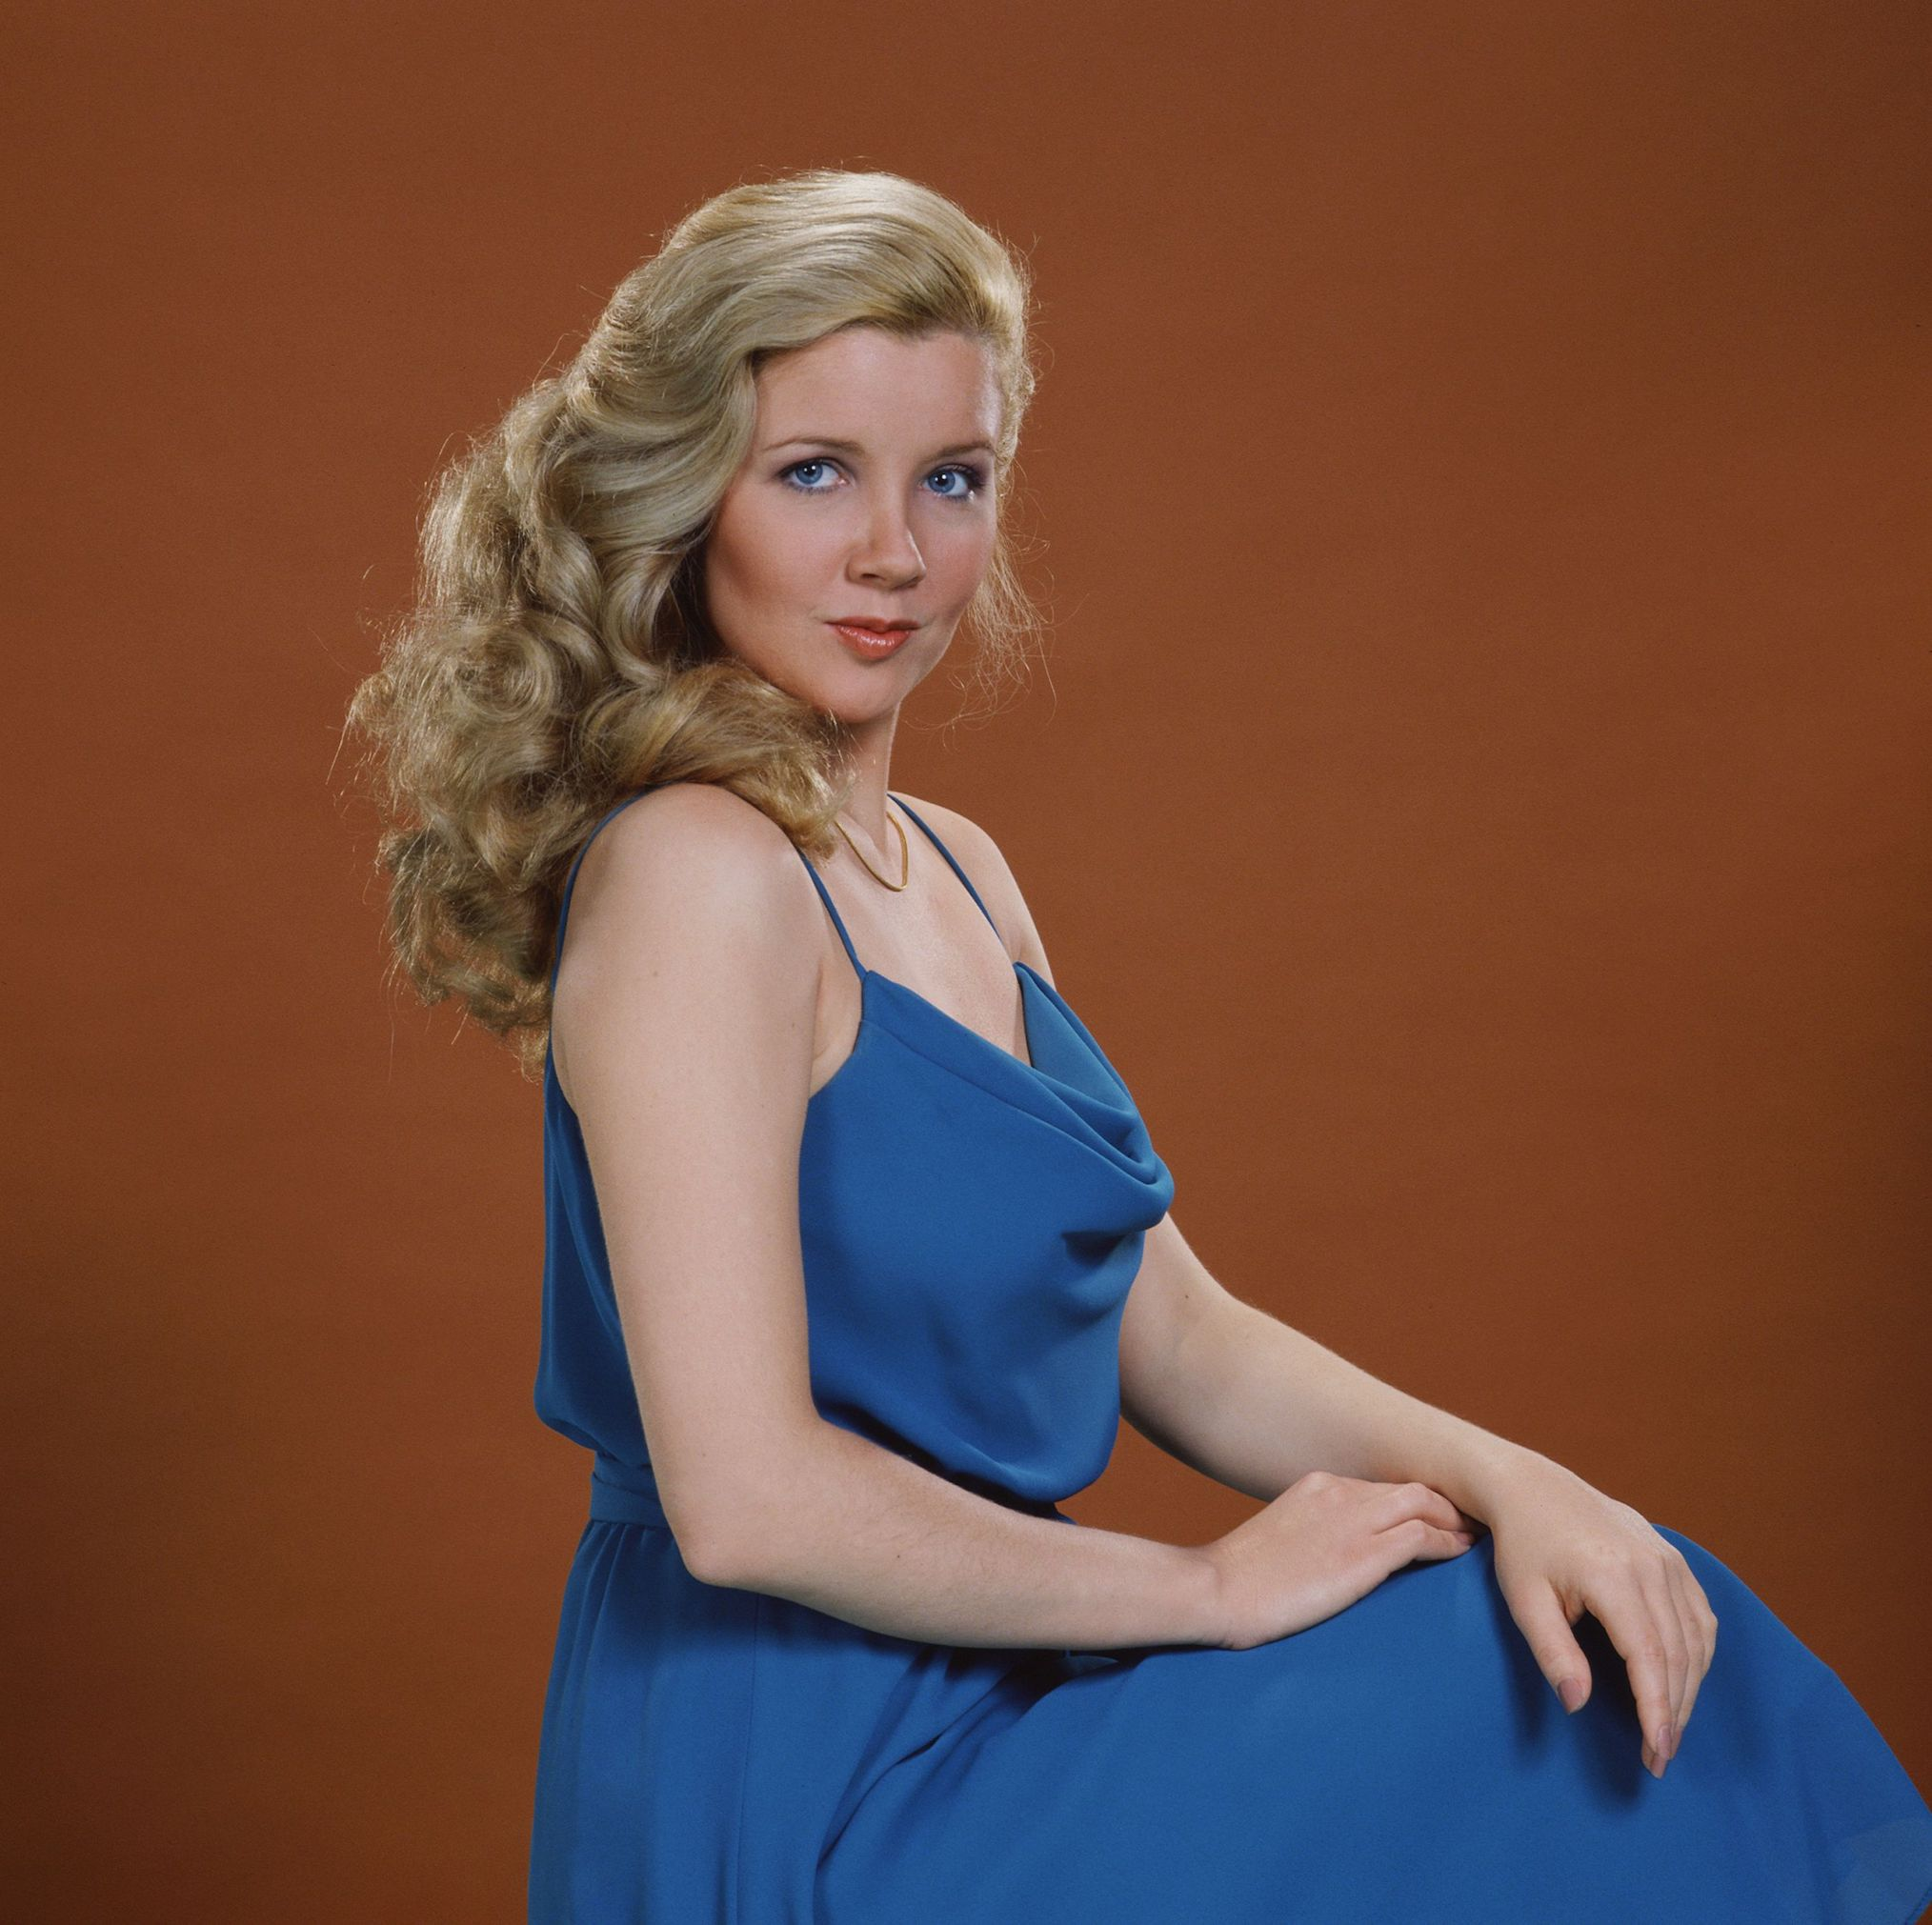 How old is nikki newman on young and the restless